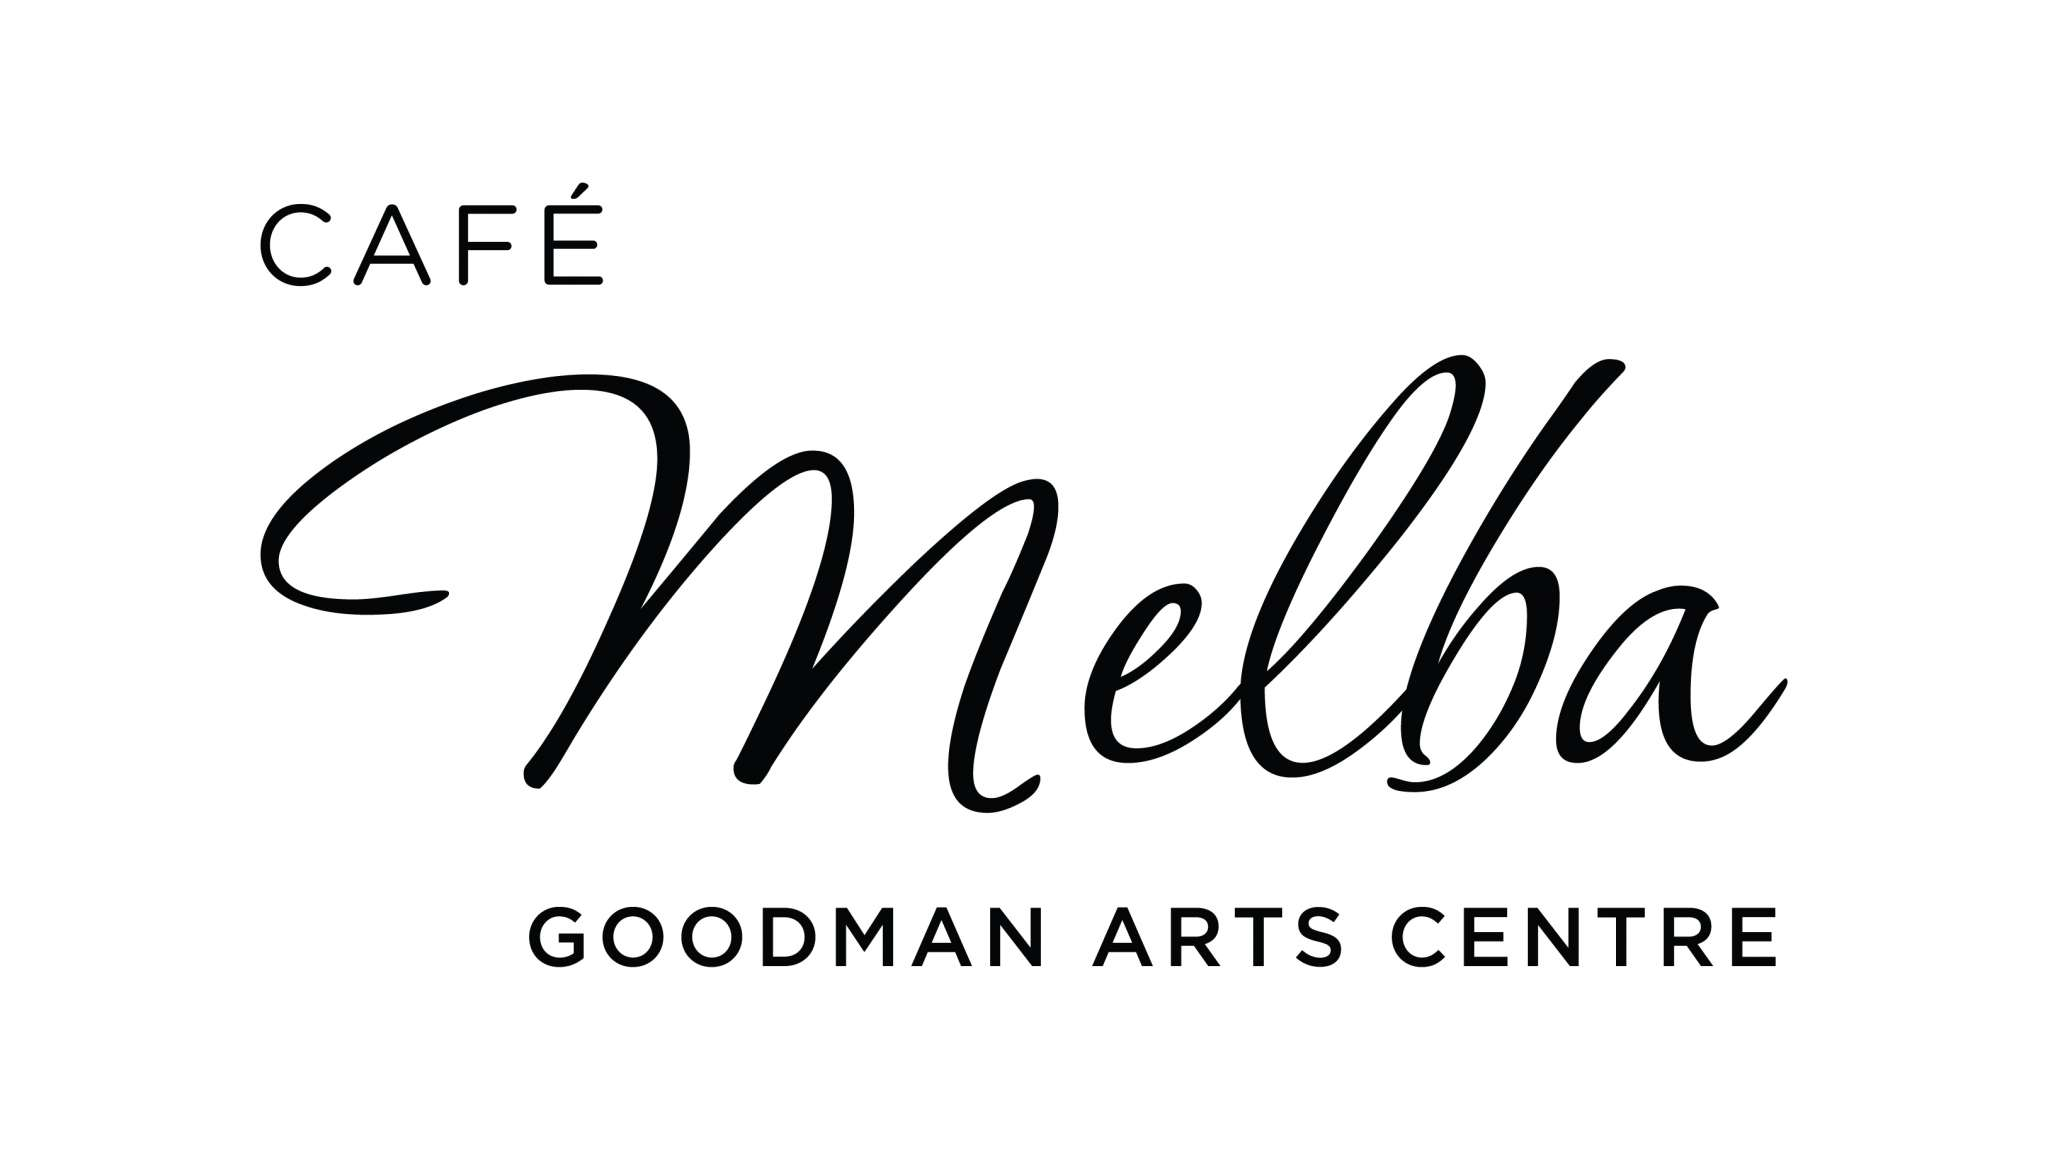 Cafe Melba Goodman Arts Centre Logo Identity Black Anza